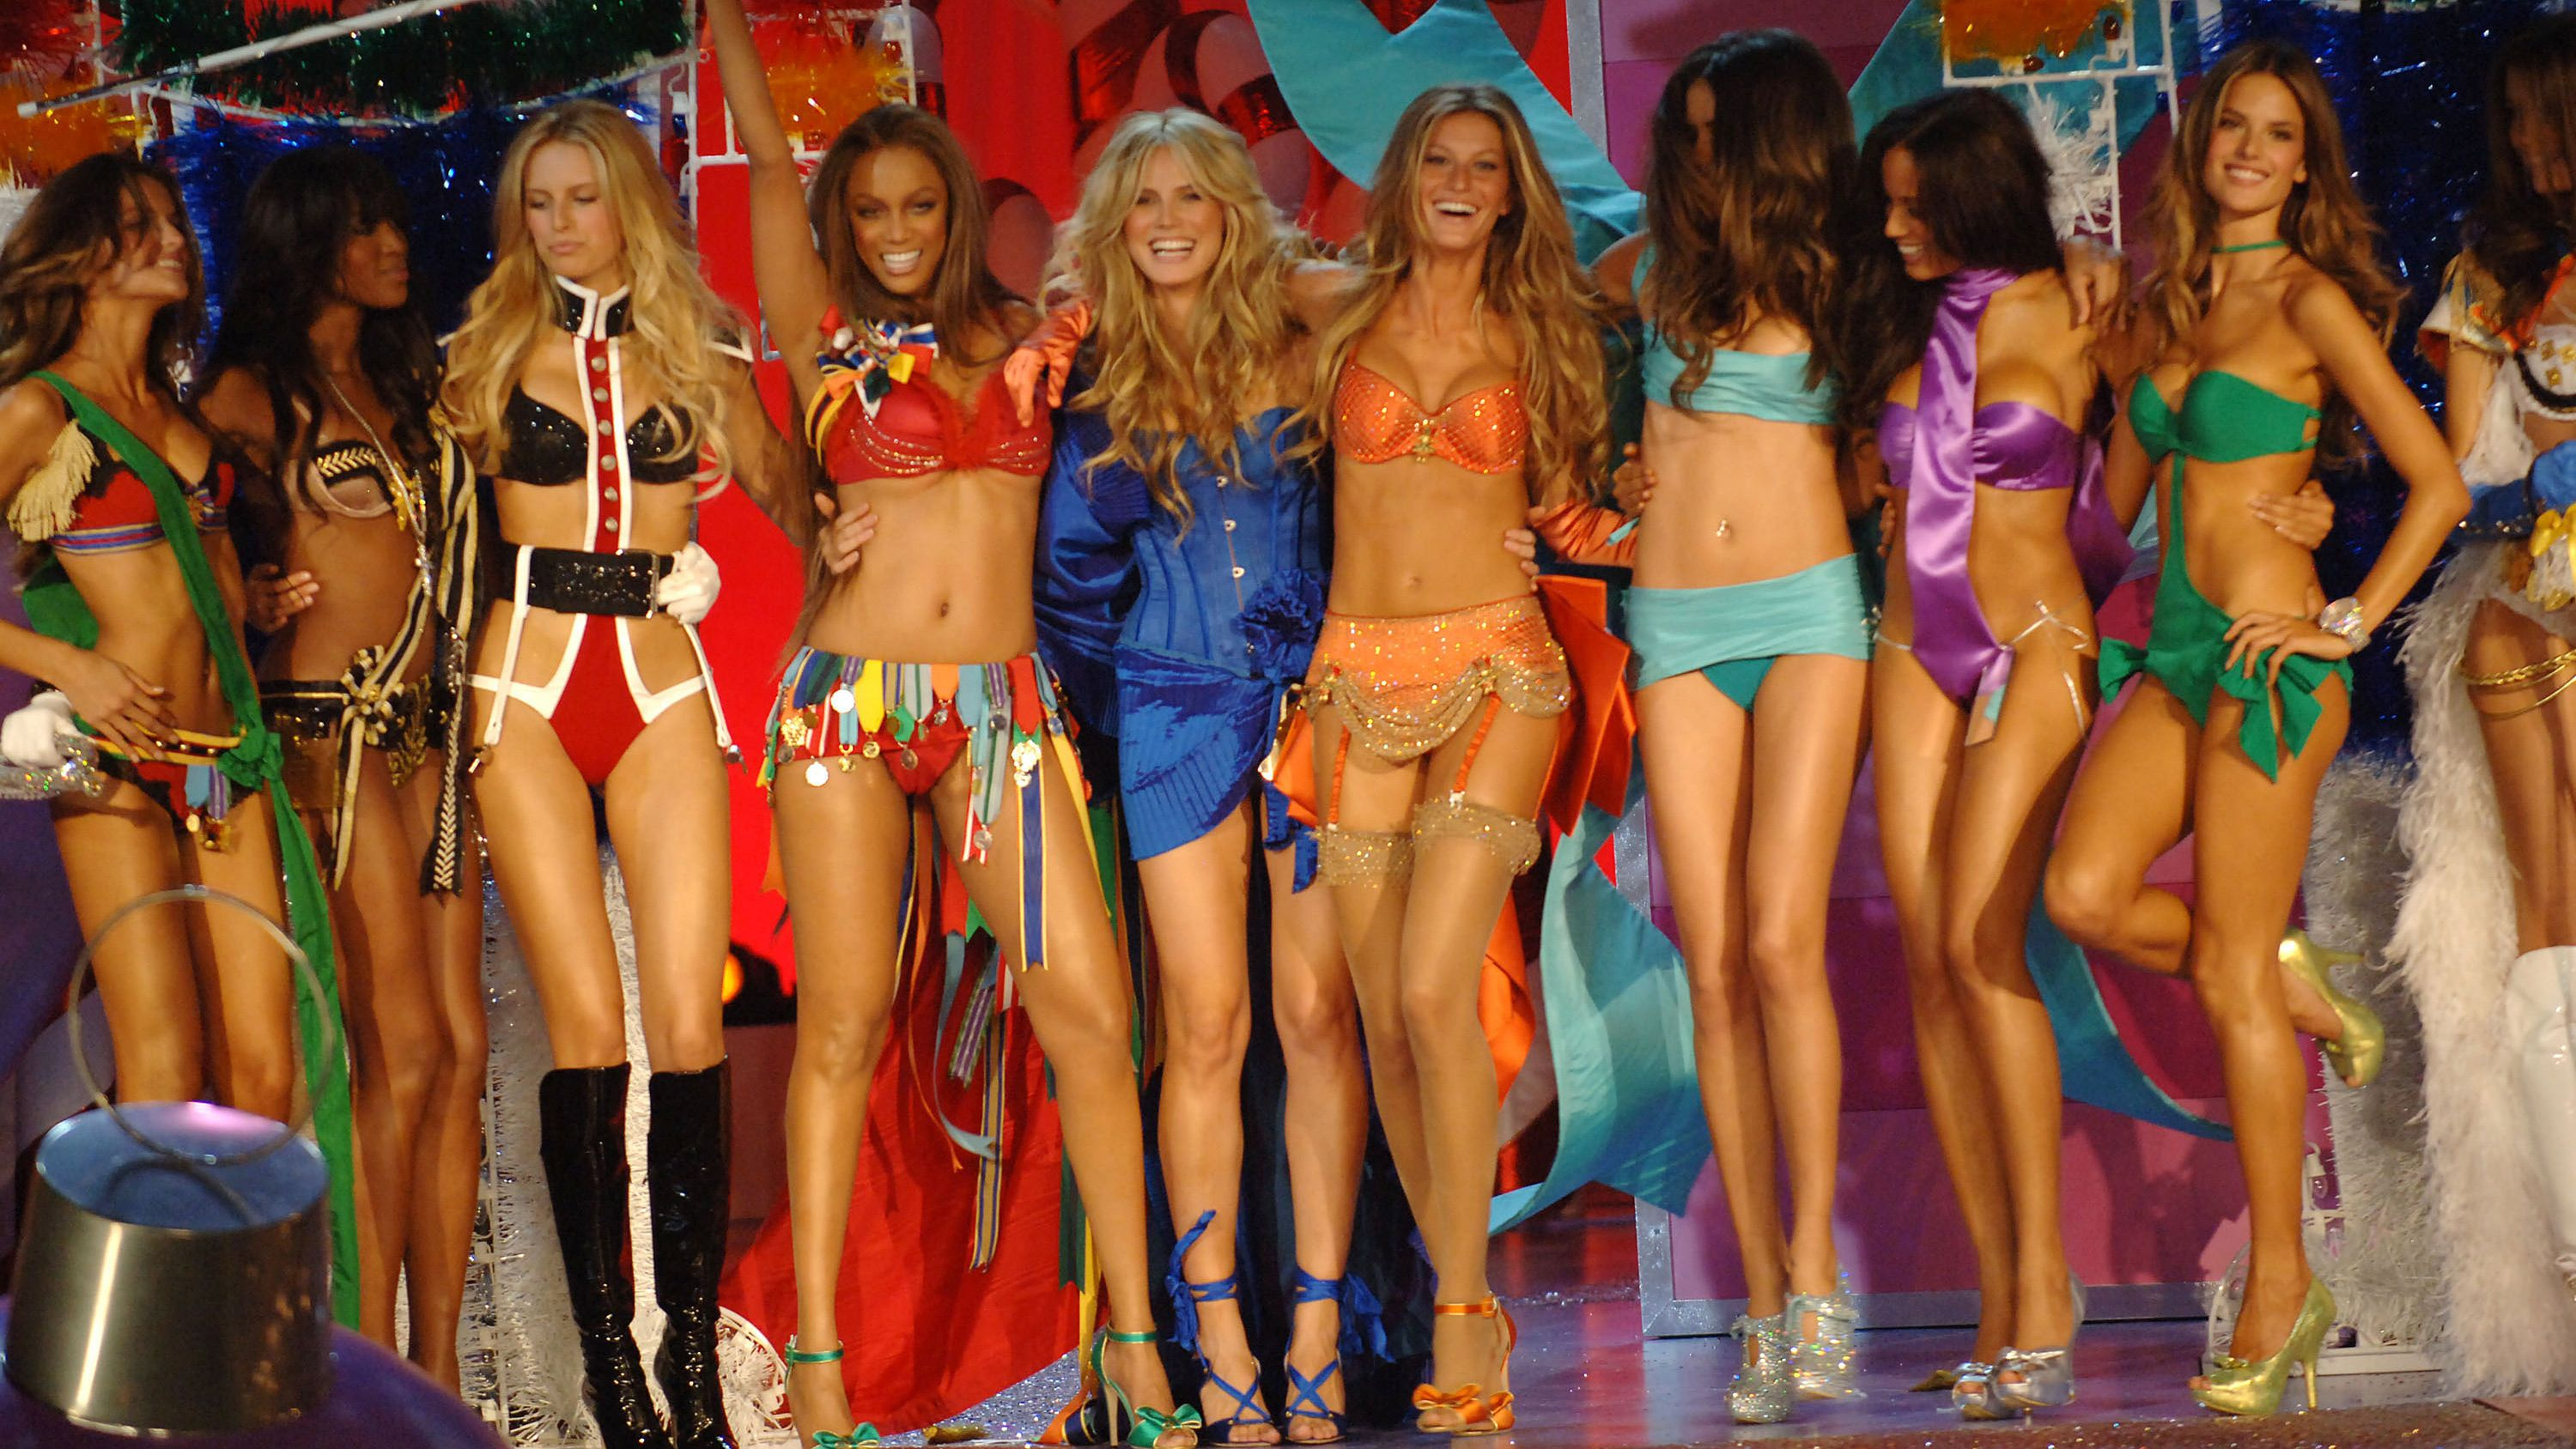 Victoria S Secret Fashion Show History In Photos Models Over The Years